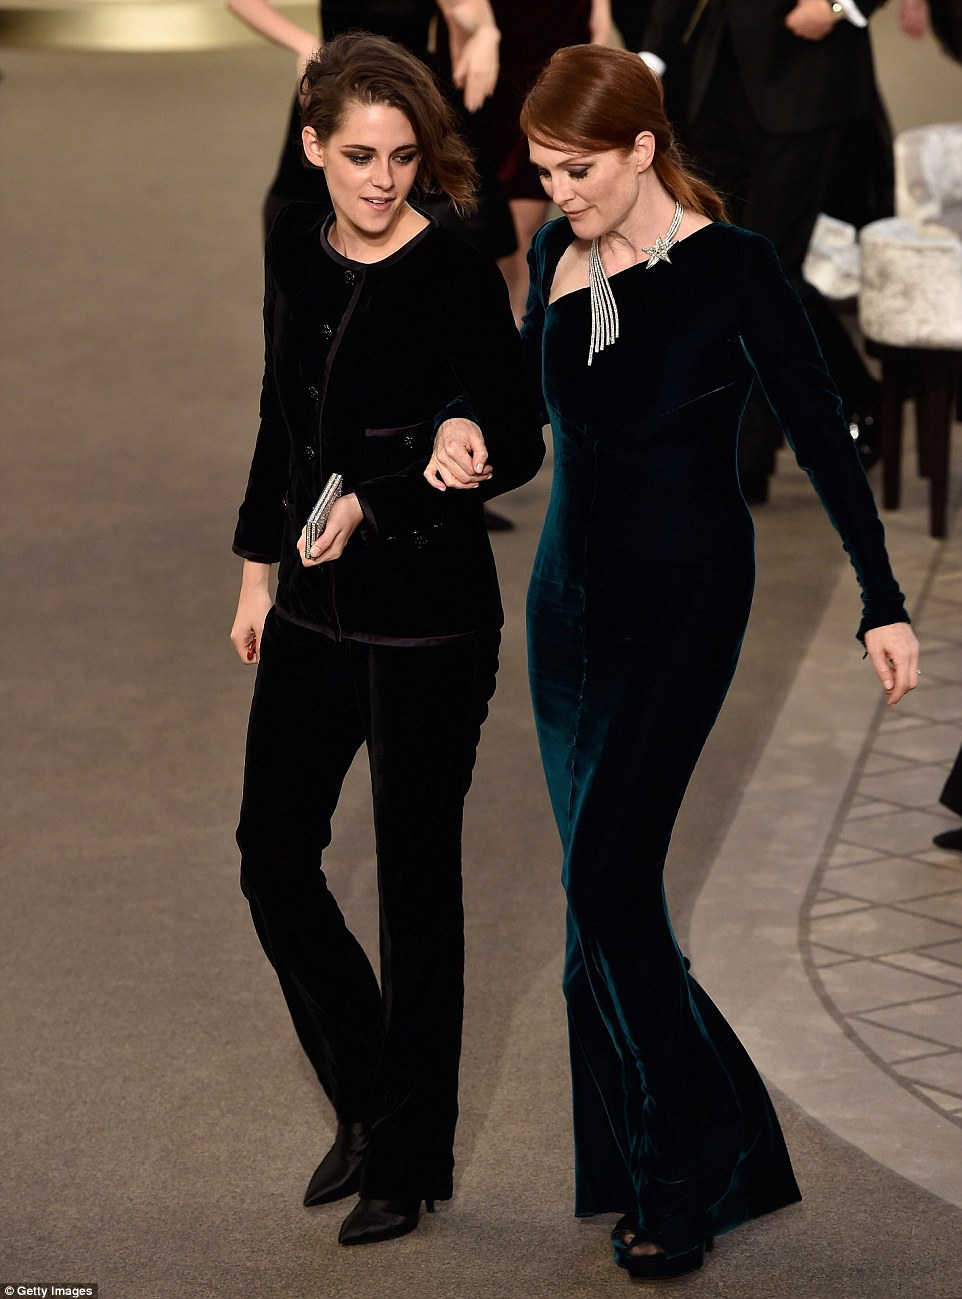 Stylish pair: Kristen Stewart and Julianne Moore, who played mother and daughter in the 2015 Oscar winning film Still Alice, wowed in glam velvet ensembles as they took part in the show